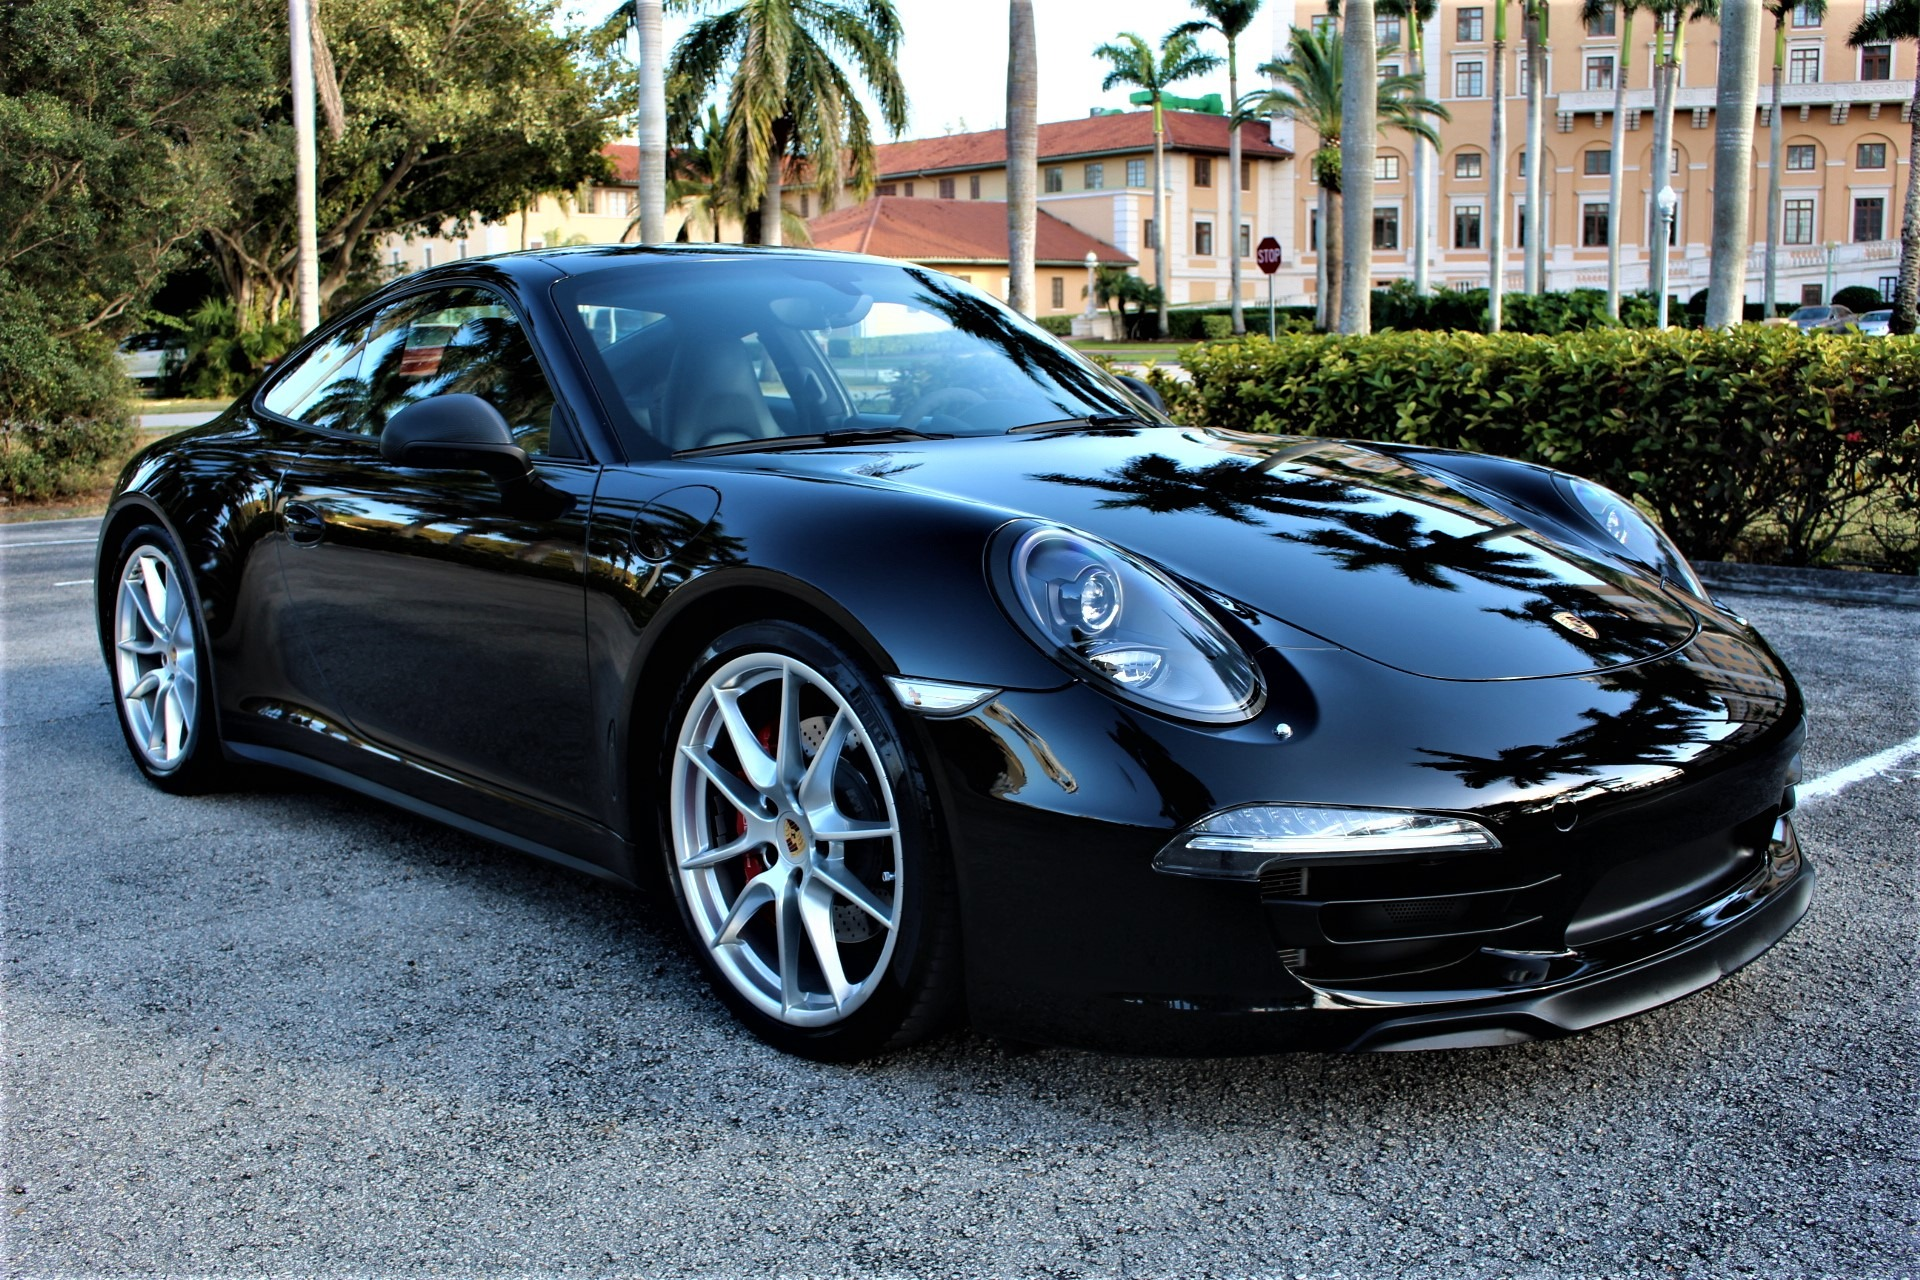 Used 2014 Porsche 911 Carrera 4S for sale Sold at The Gables Sports Cars in Miami FL 33146 2